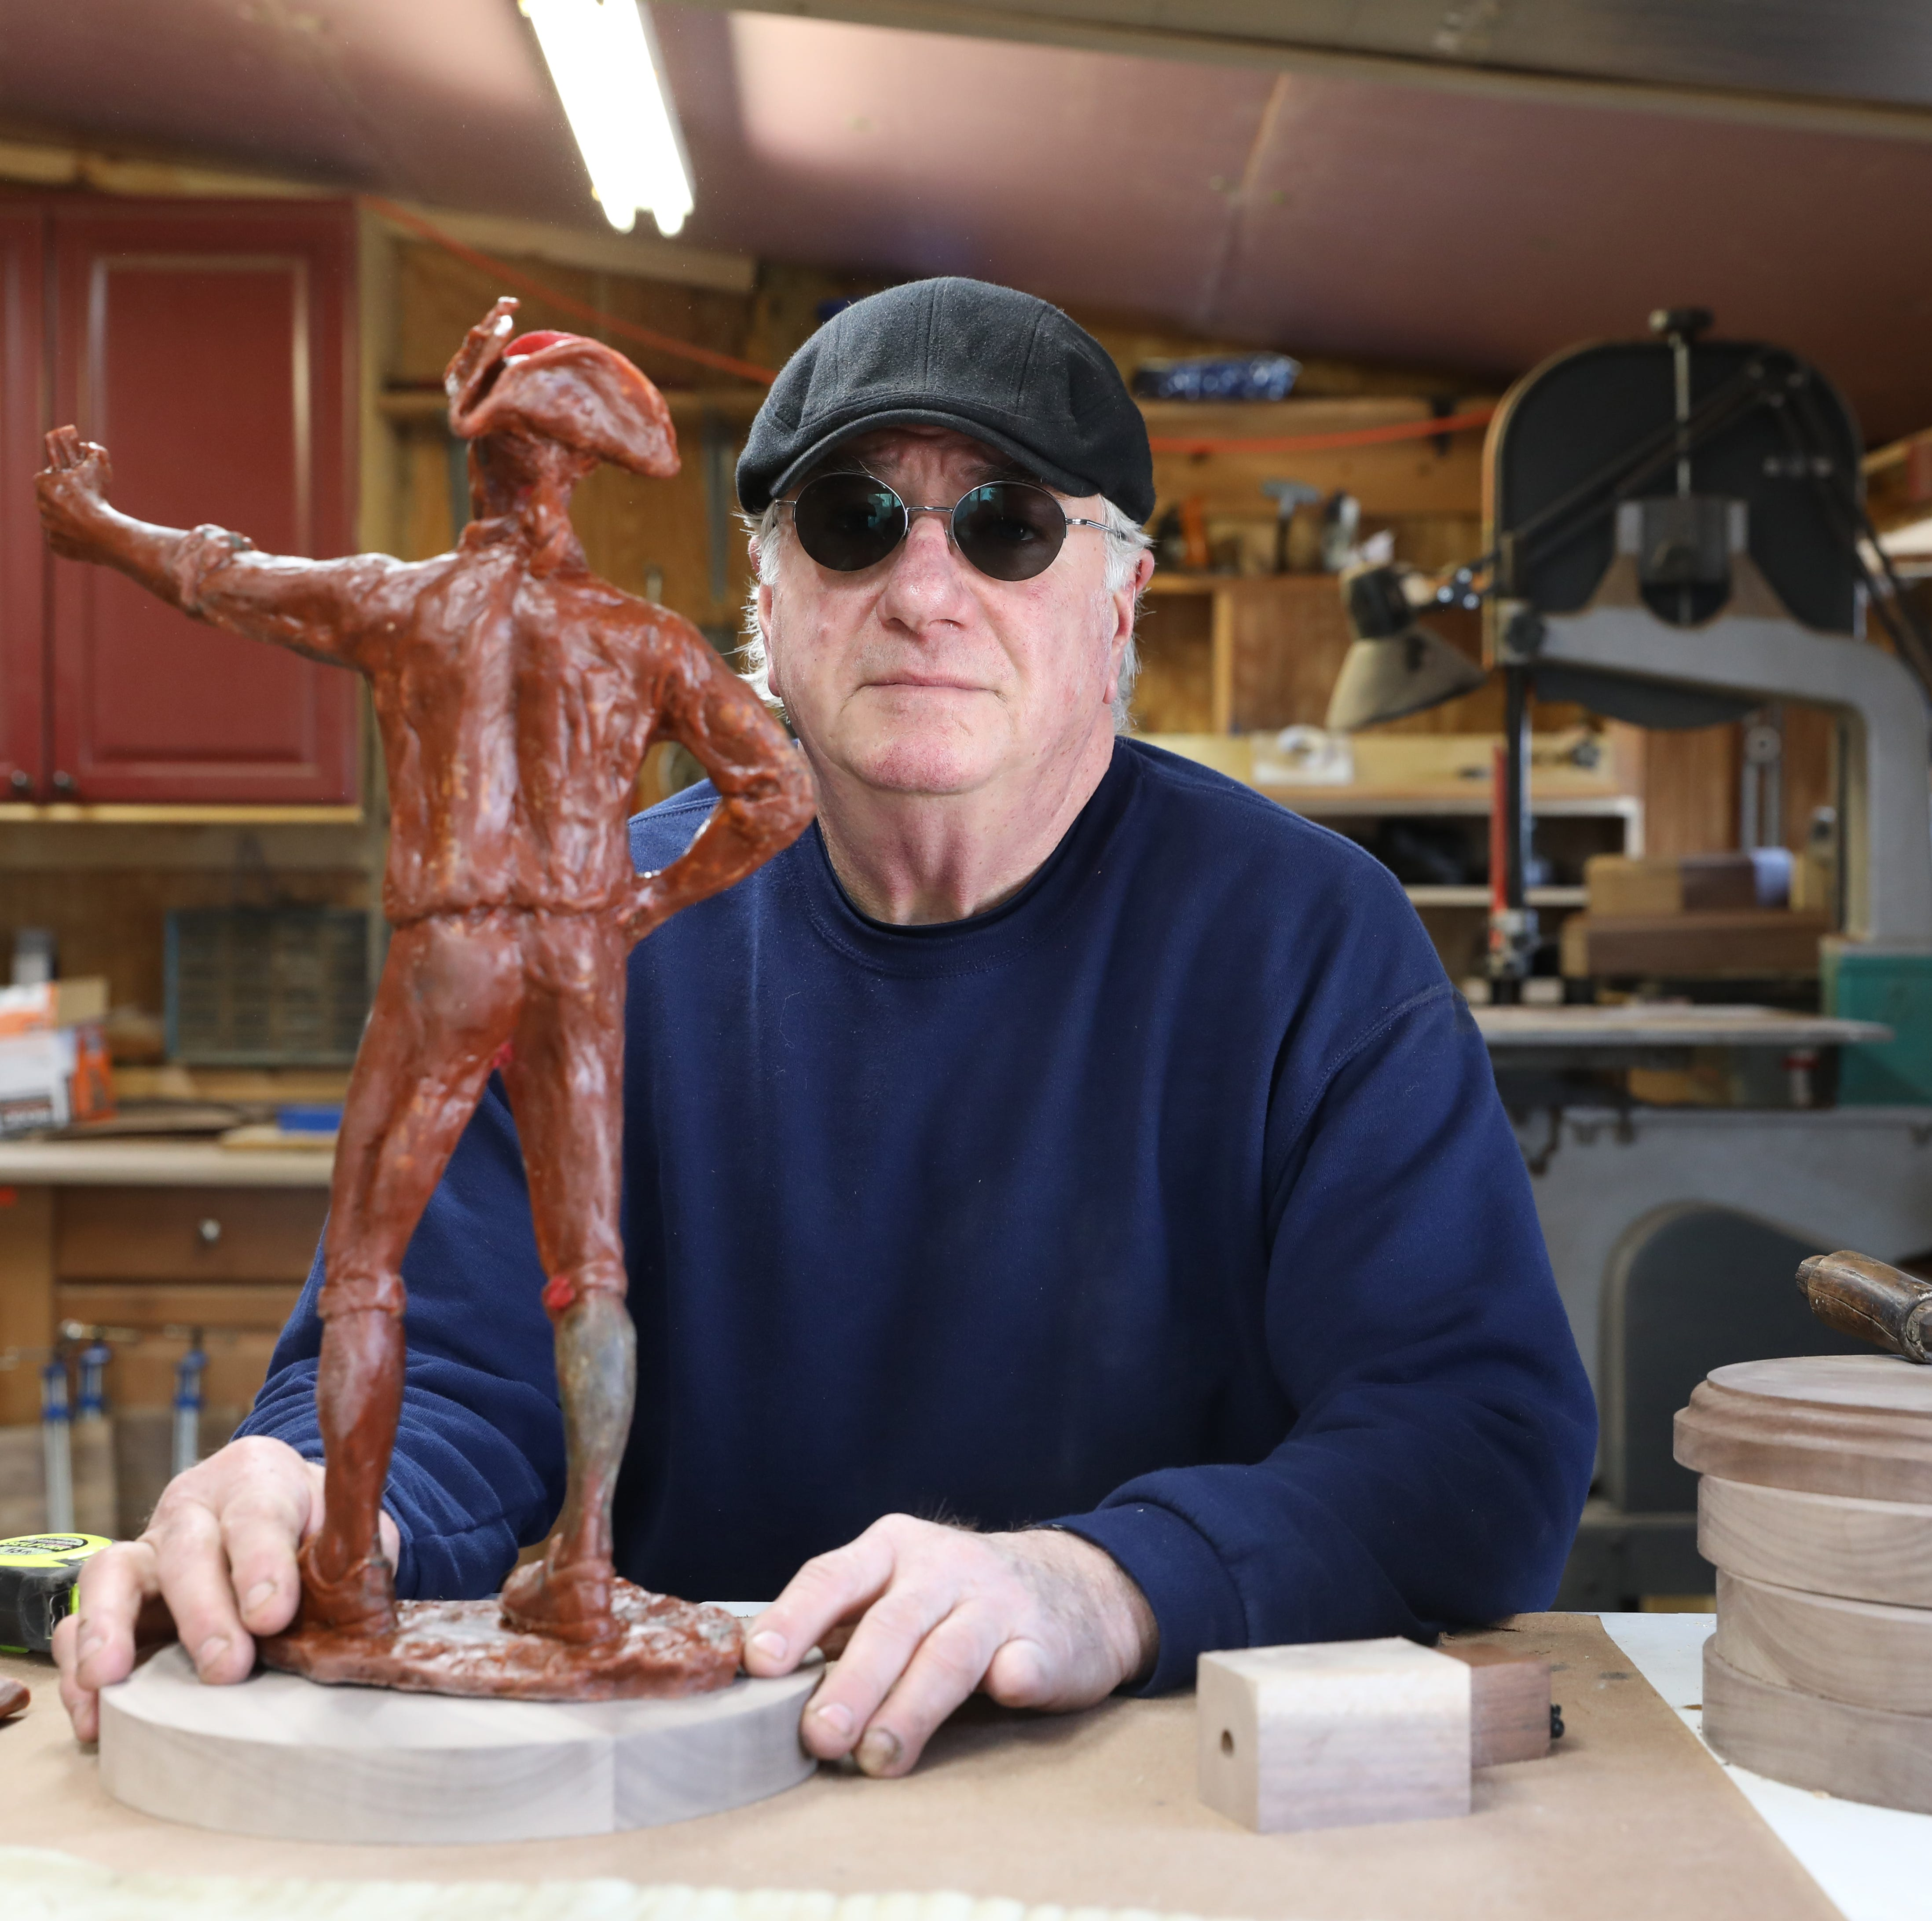 From dairy farming to bronze casting